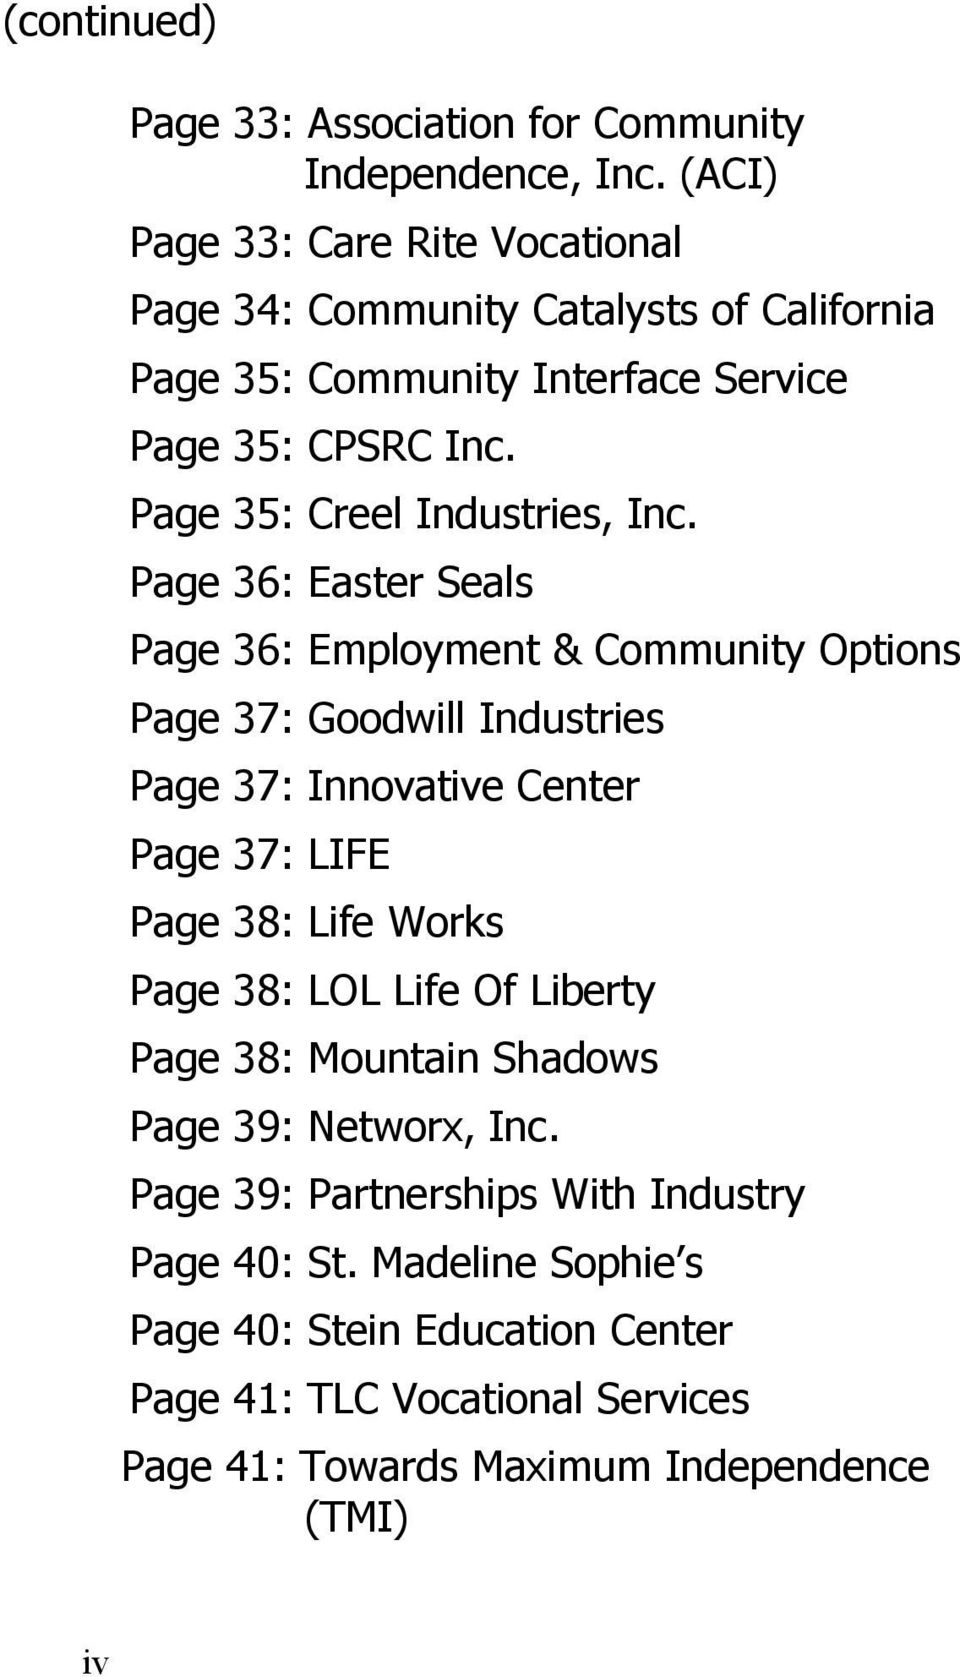 Page 35: Creel Industries, Inc.